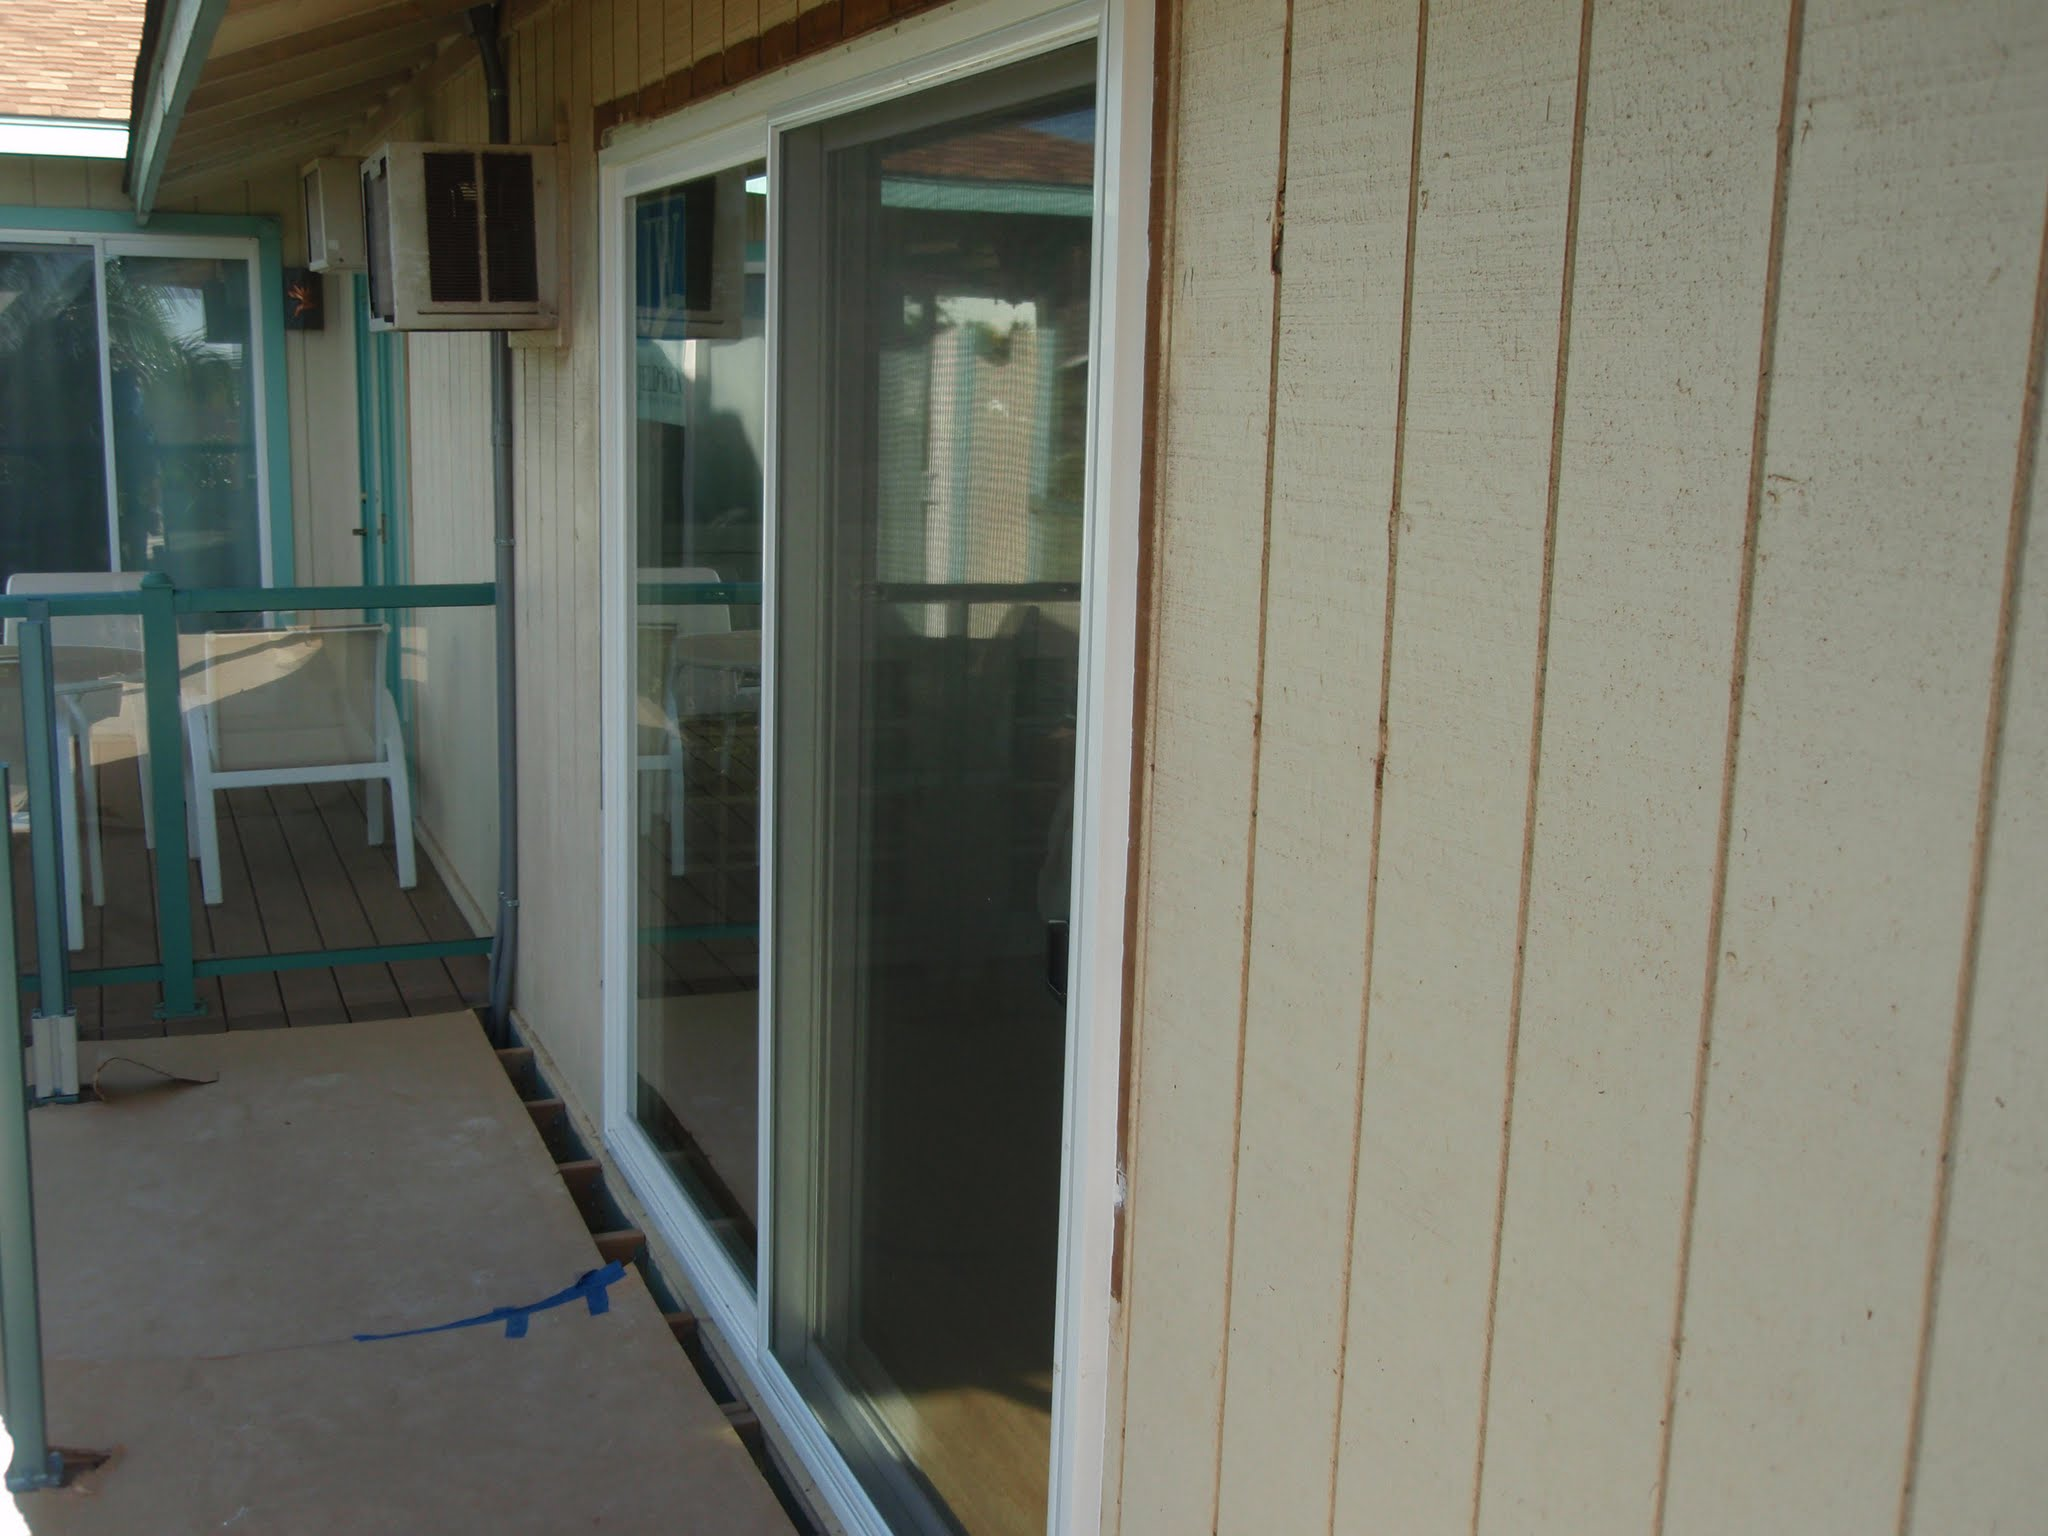 This new door akloows in tons of light & also has a great view thru this side of the house